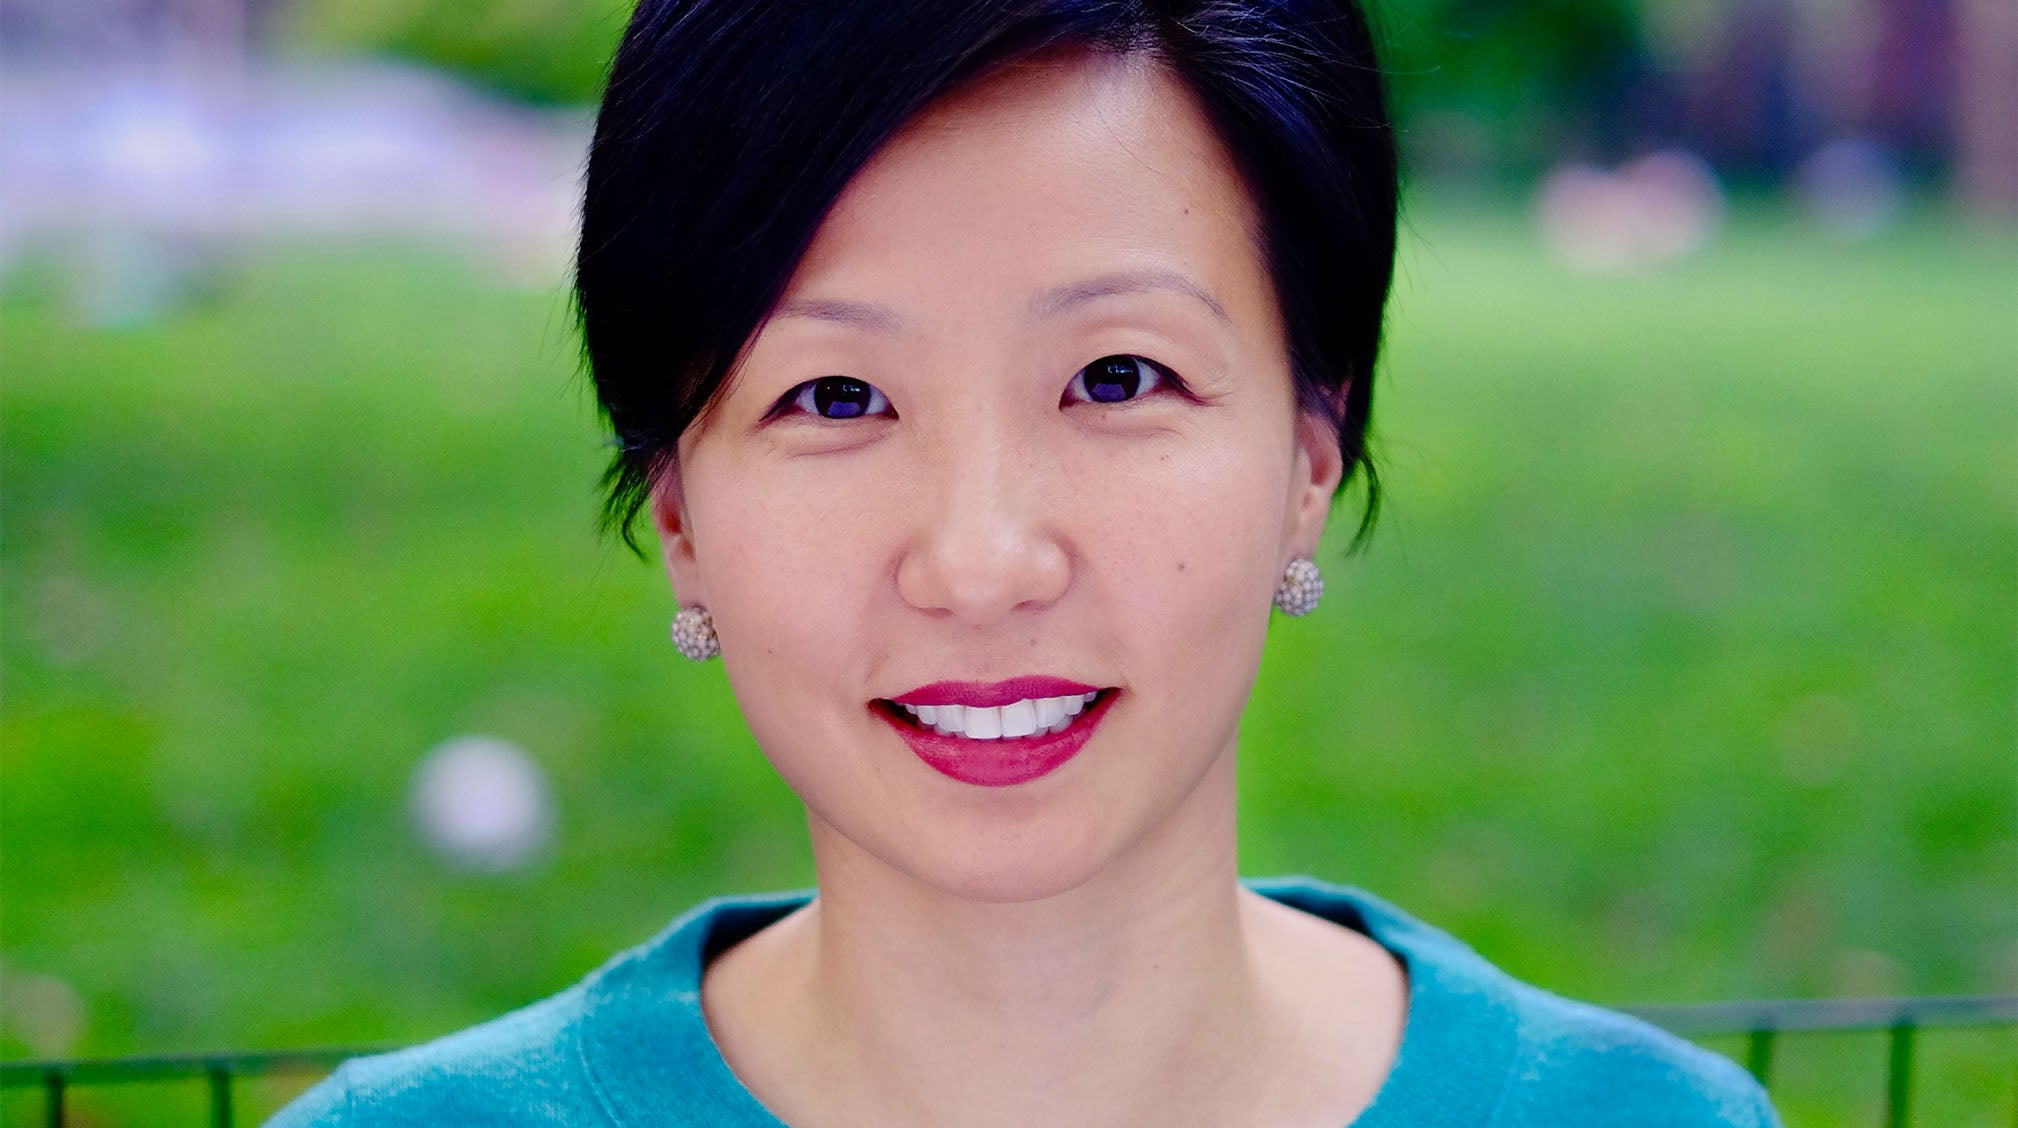 Dr. Michelle chung